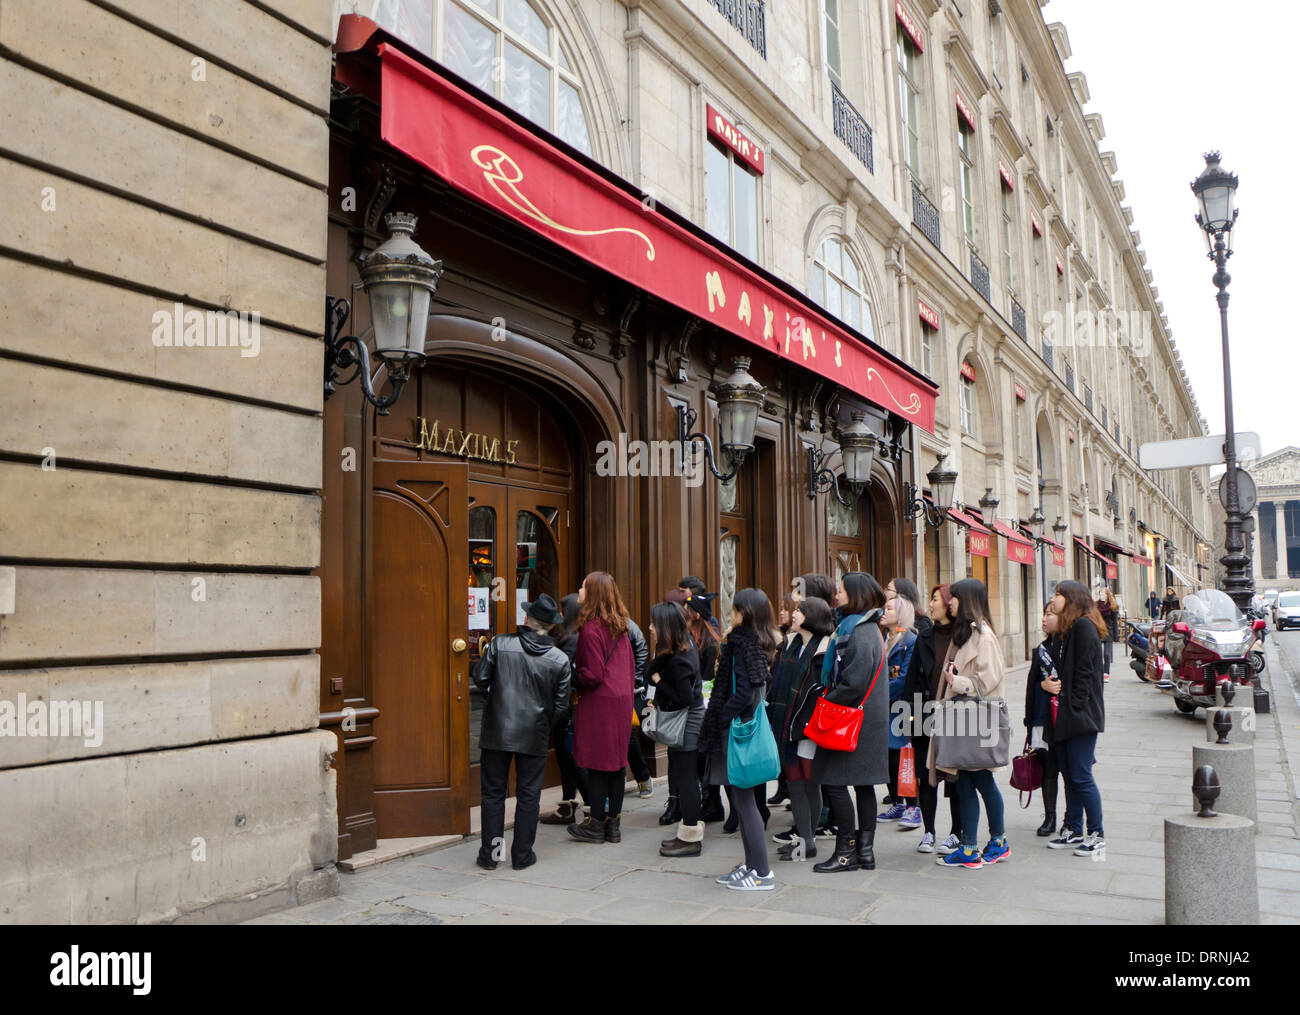 Japanese tourists visiting Maxim's restaurant at Rue Royale in Paris, France. - Stock Image